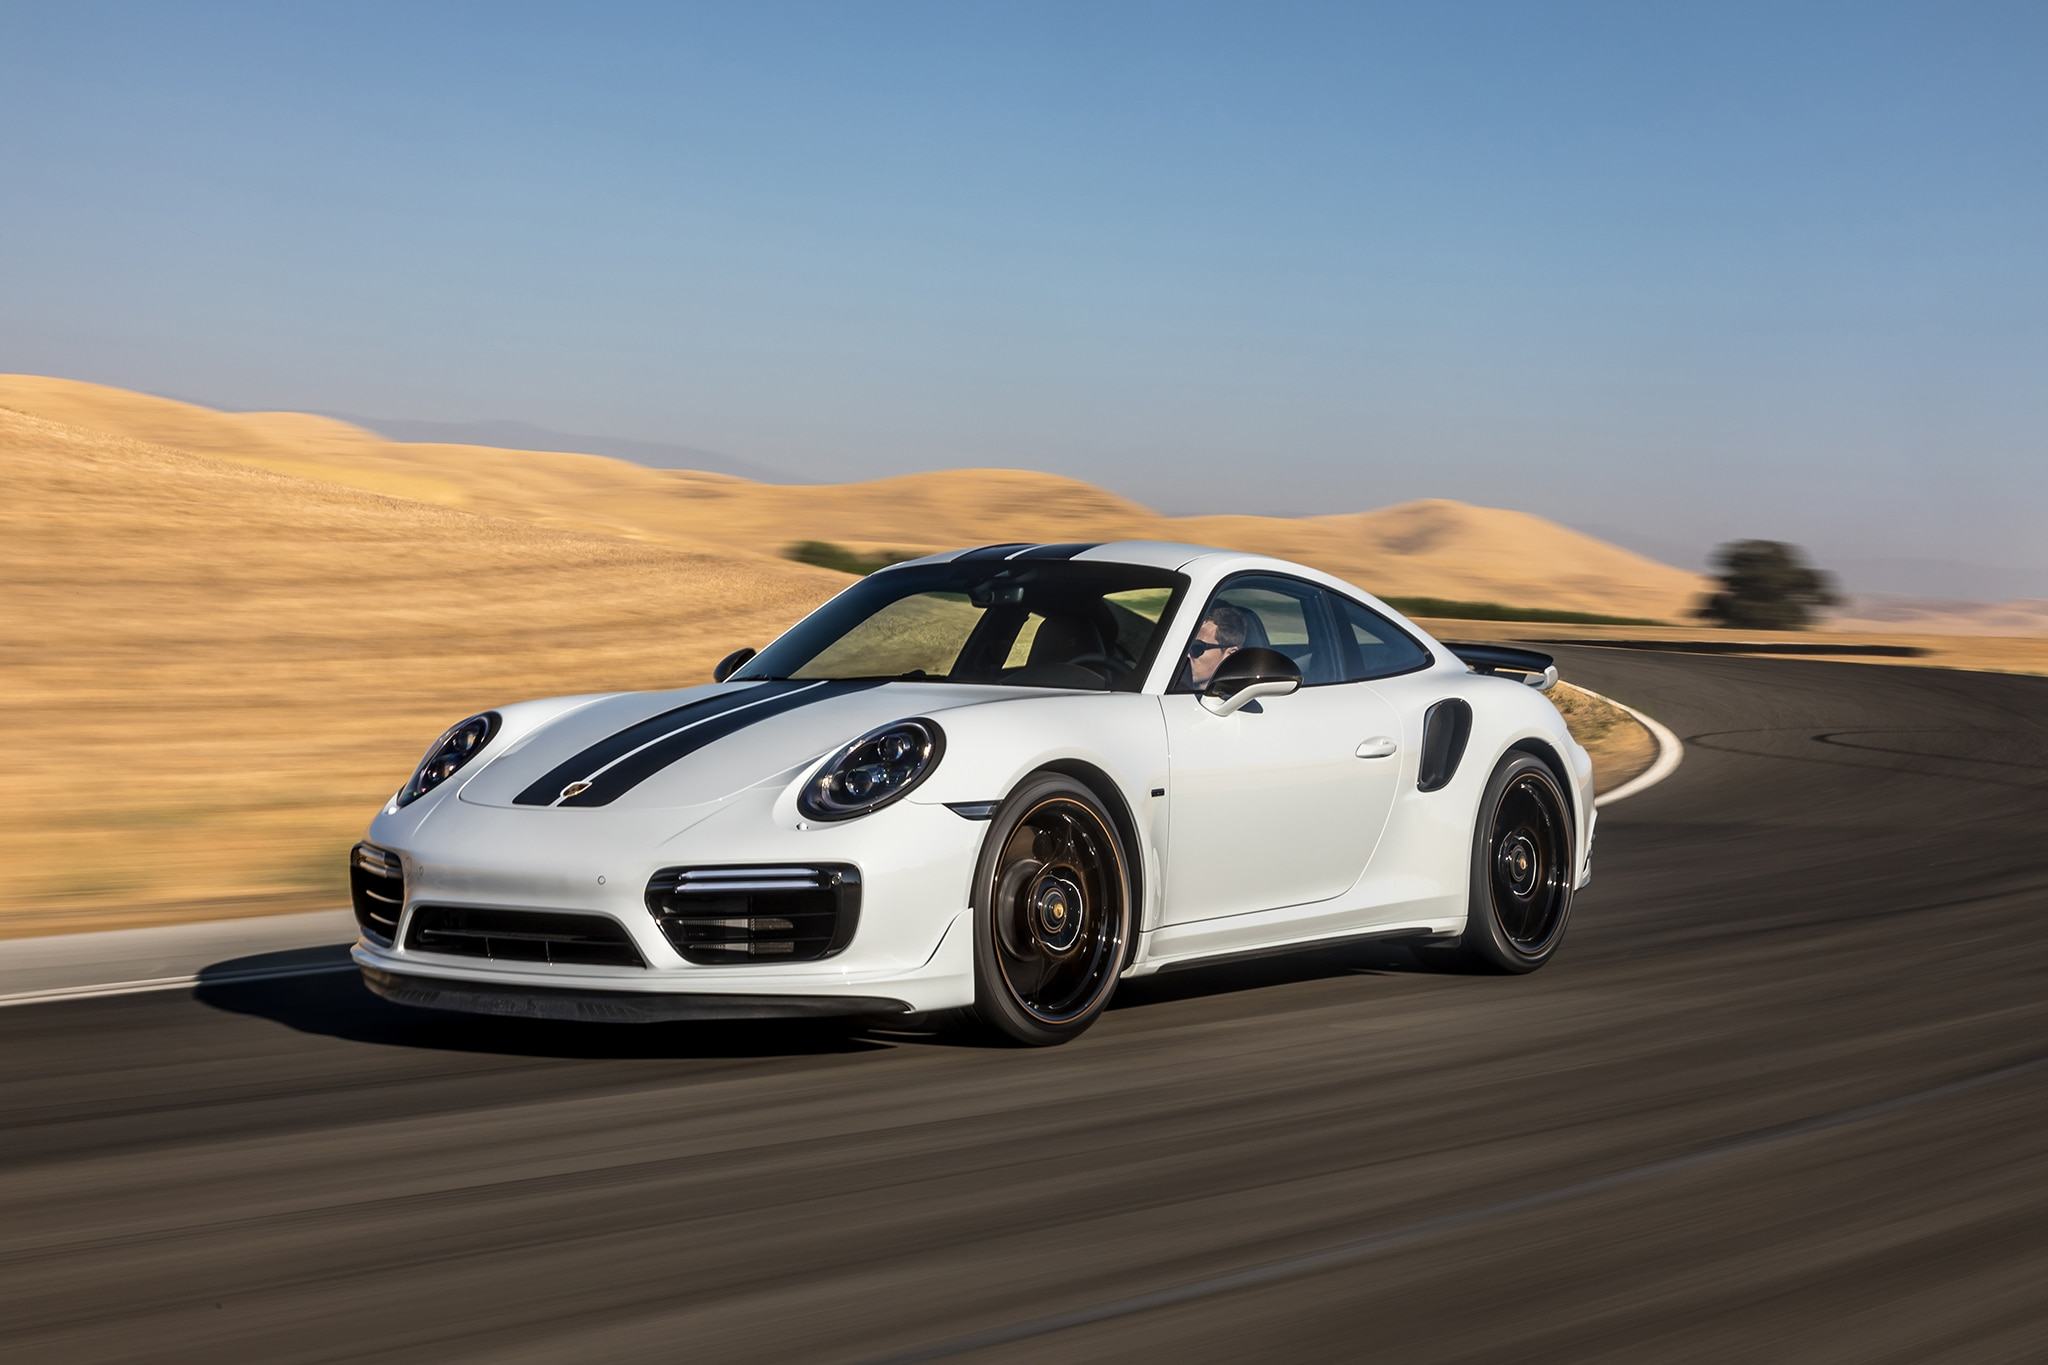 2018 Porsche 911 Turbo S Exclusive Front Three Quarter In Motion 01